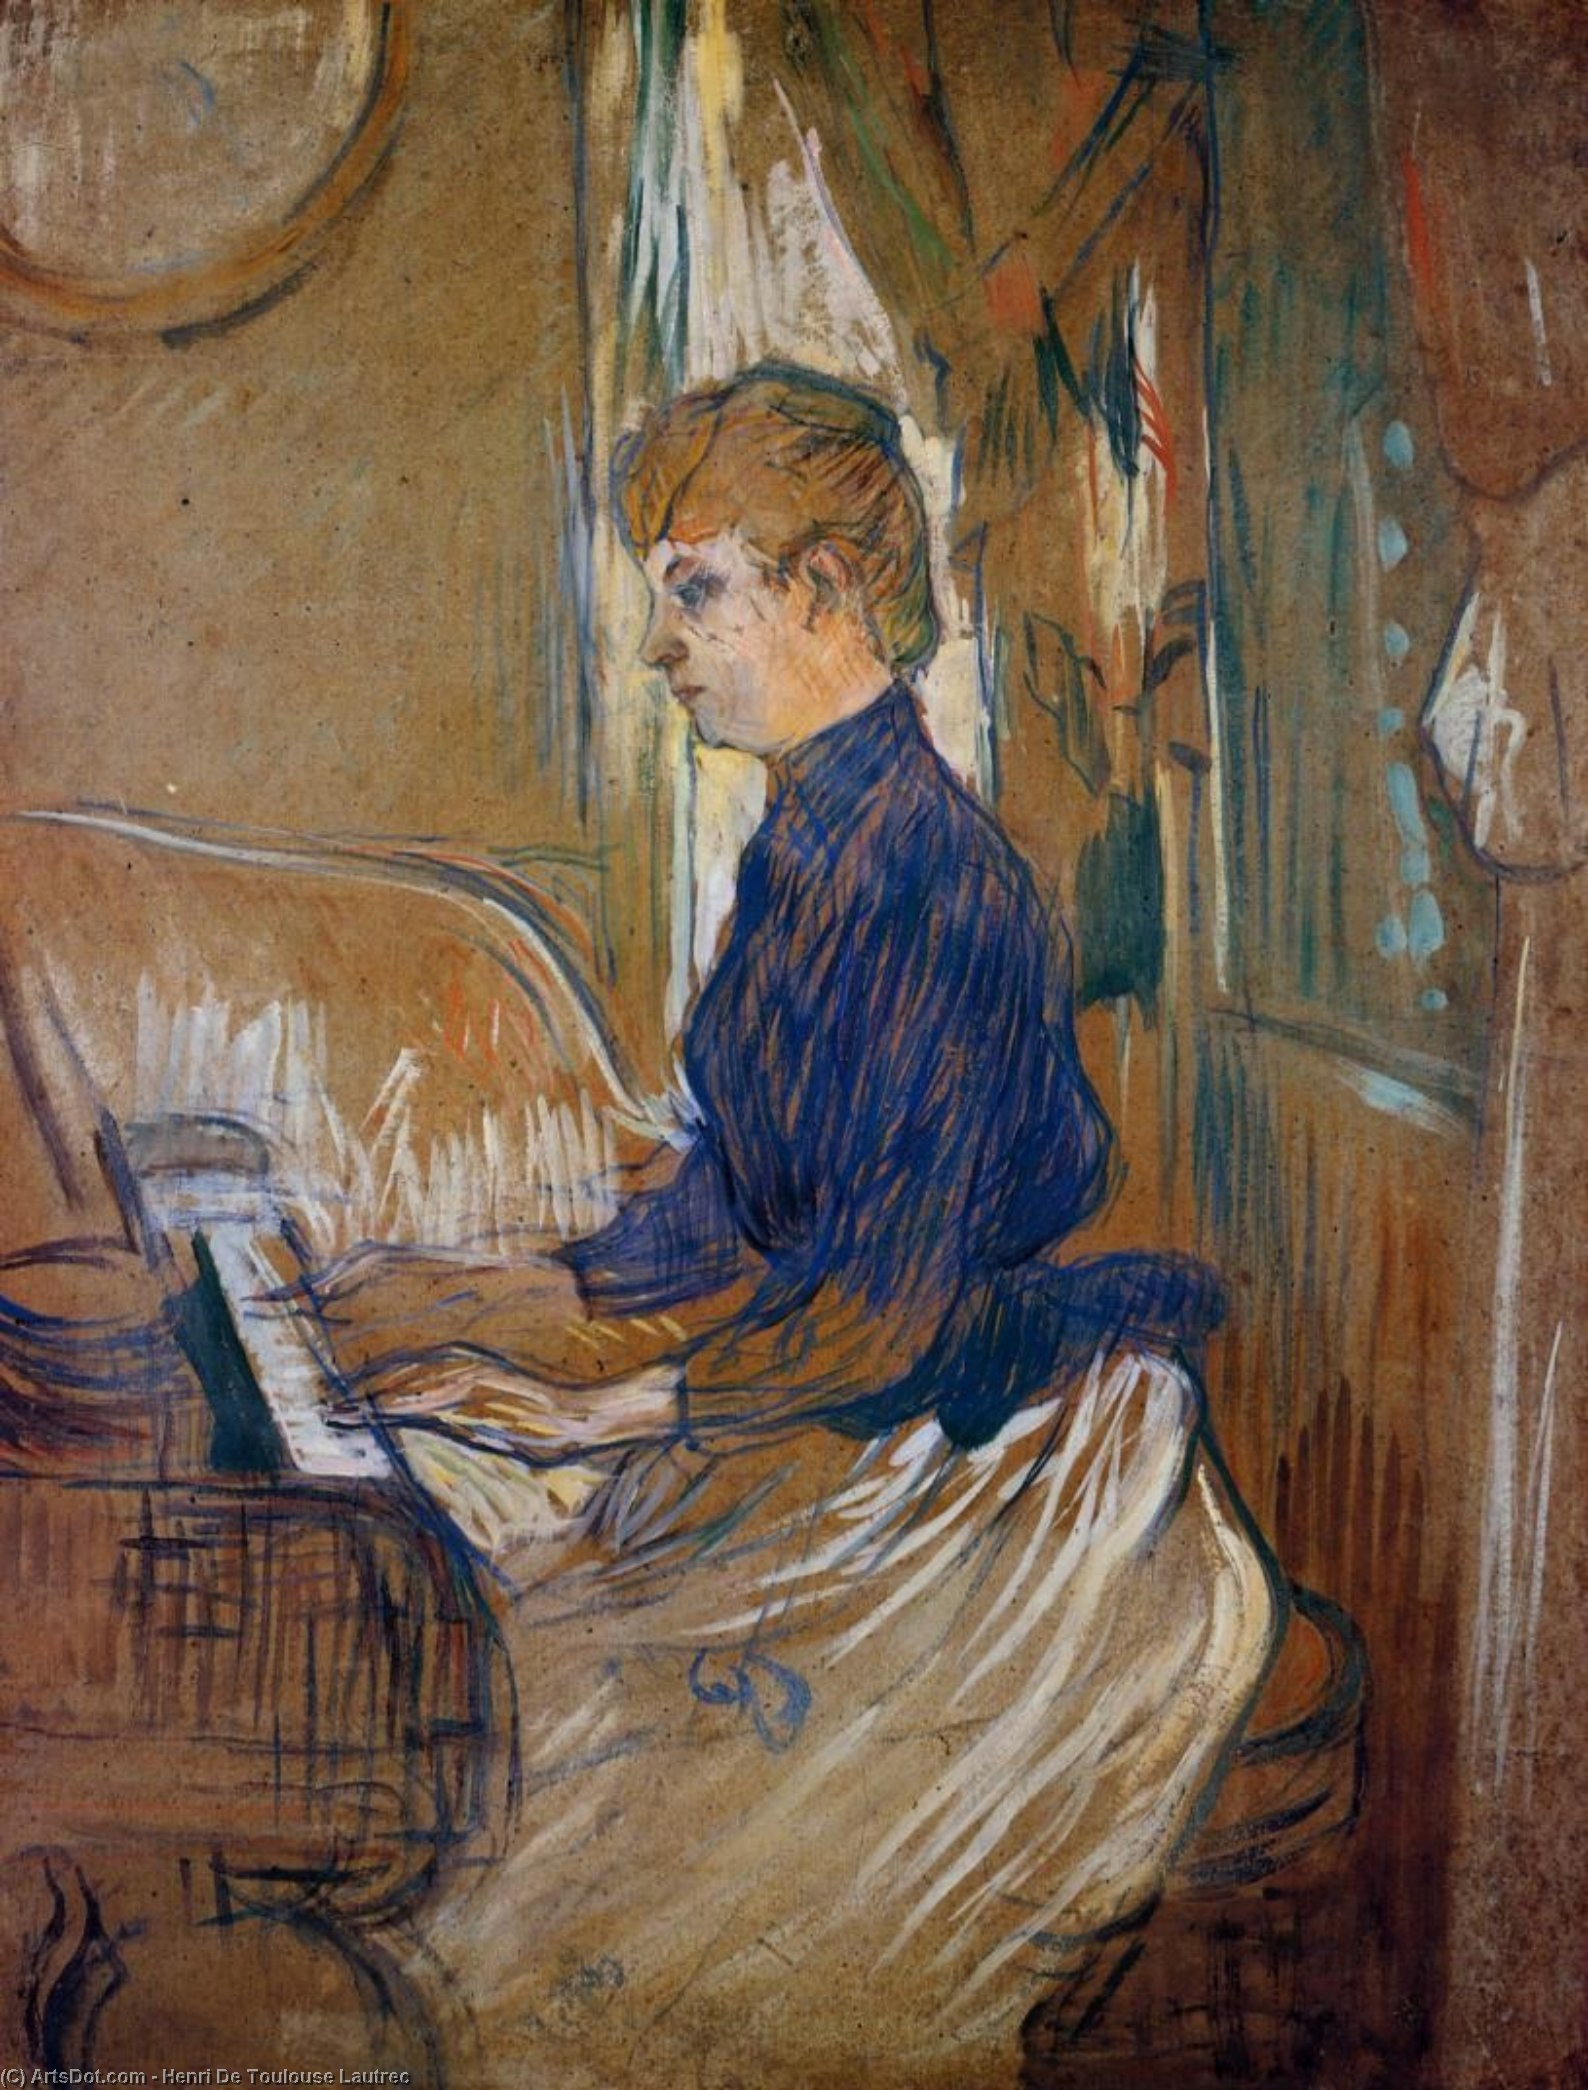 At the Piano - Madame Juliette Pascal in the Salon of the Chateau de Malrome, Oil by Henri De Toulouse Lautrec (1864-1901, France)